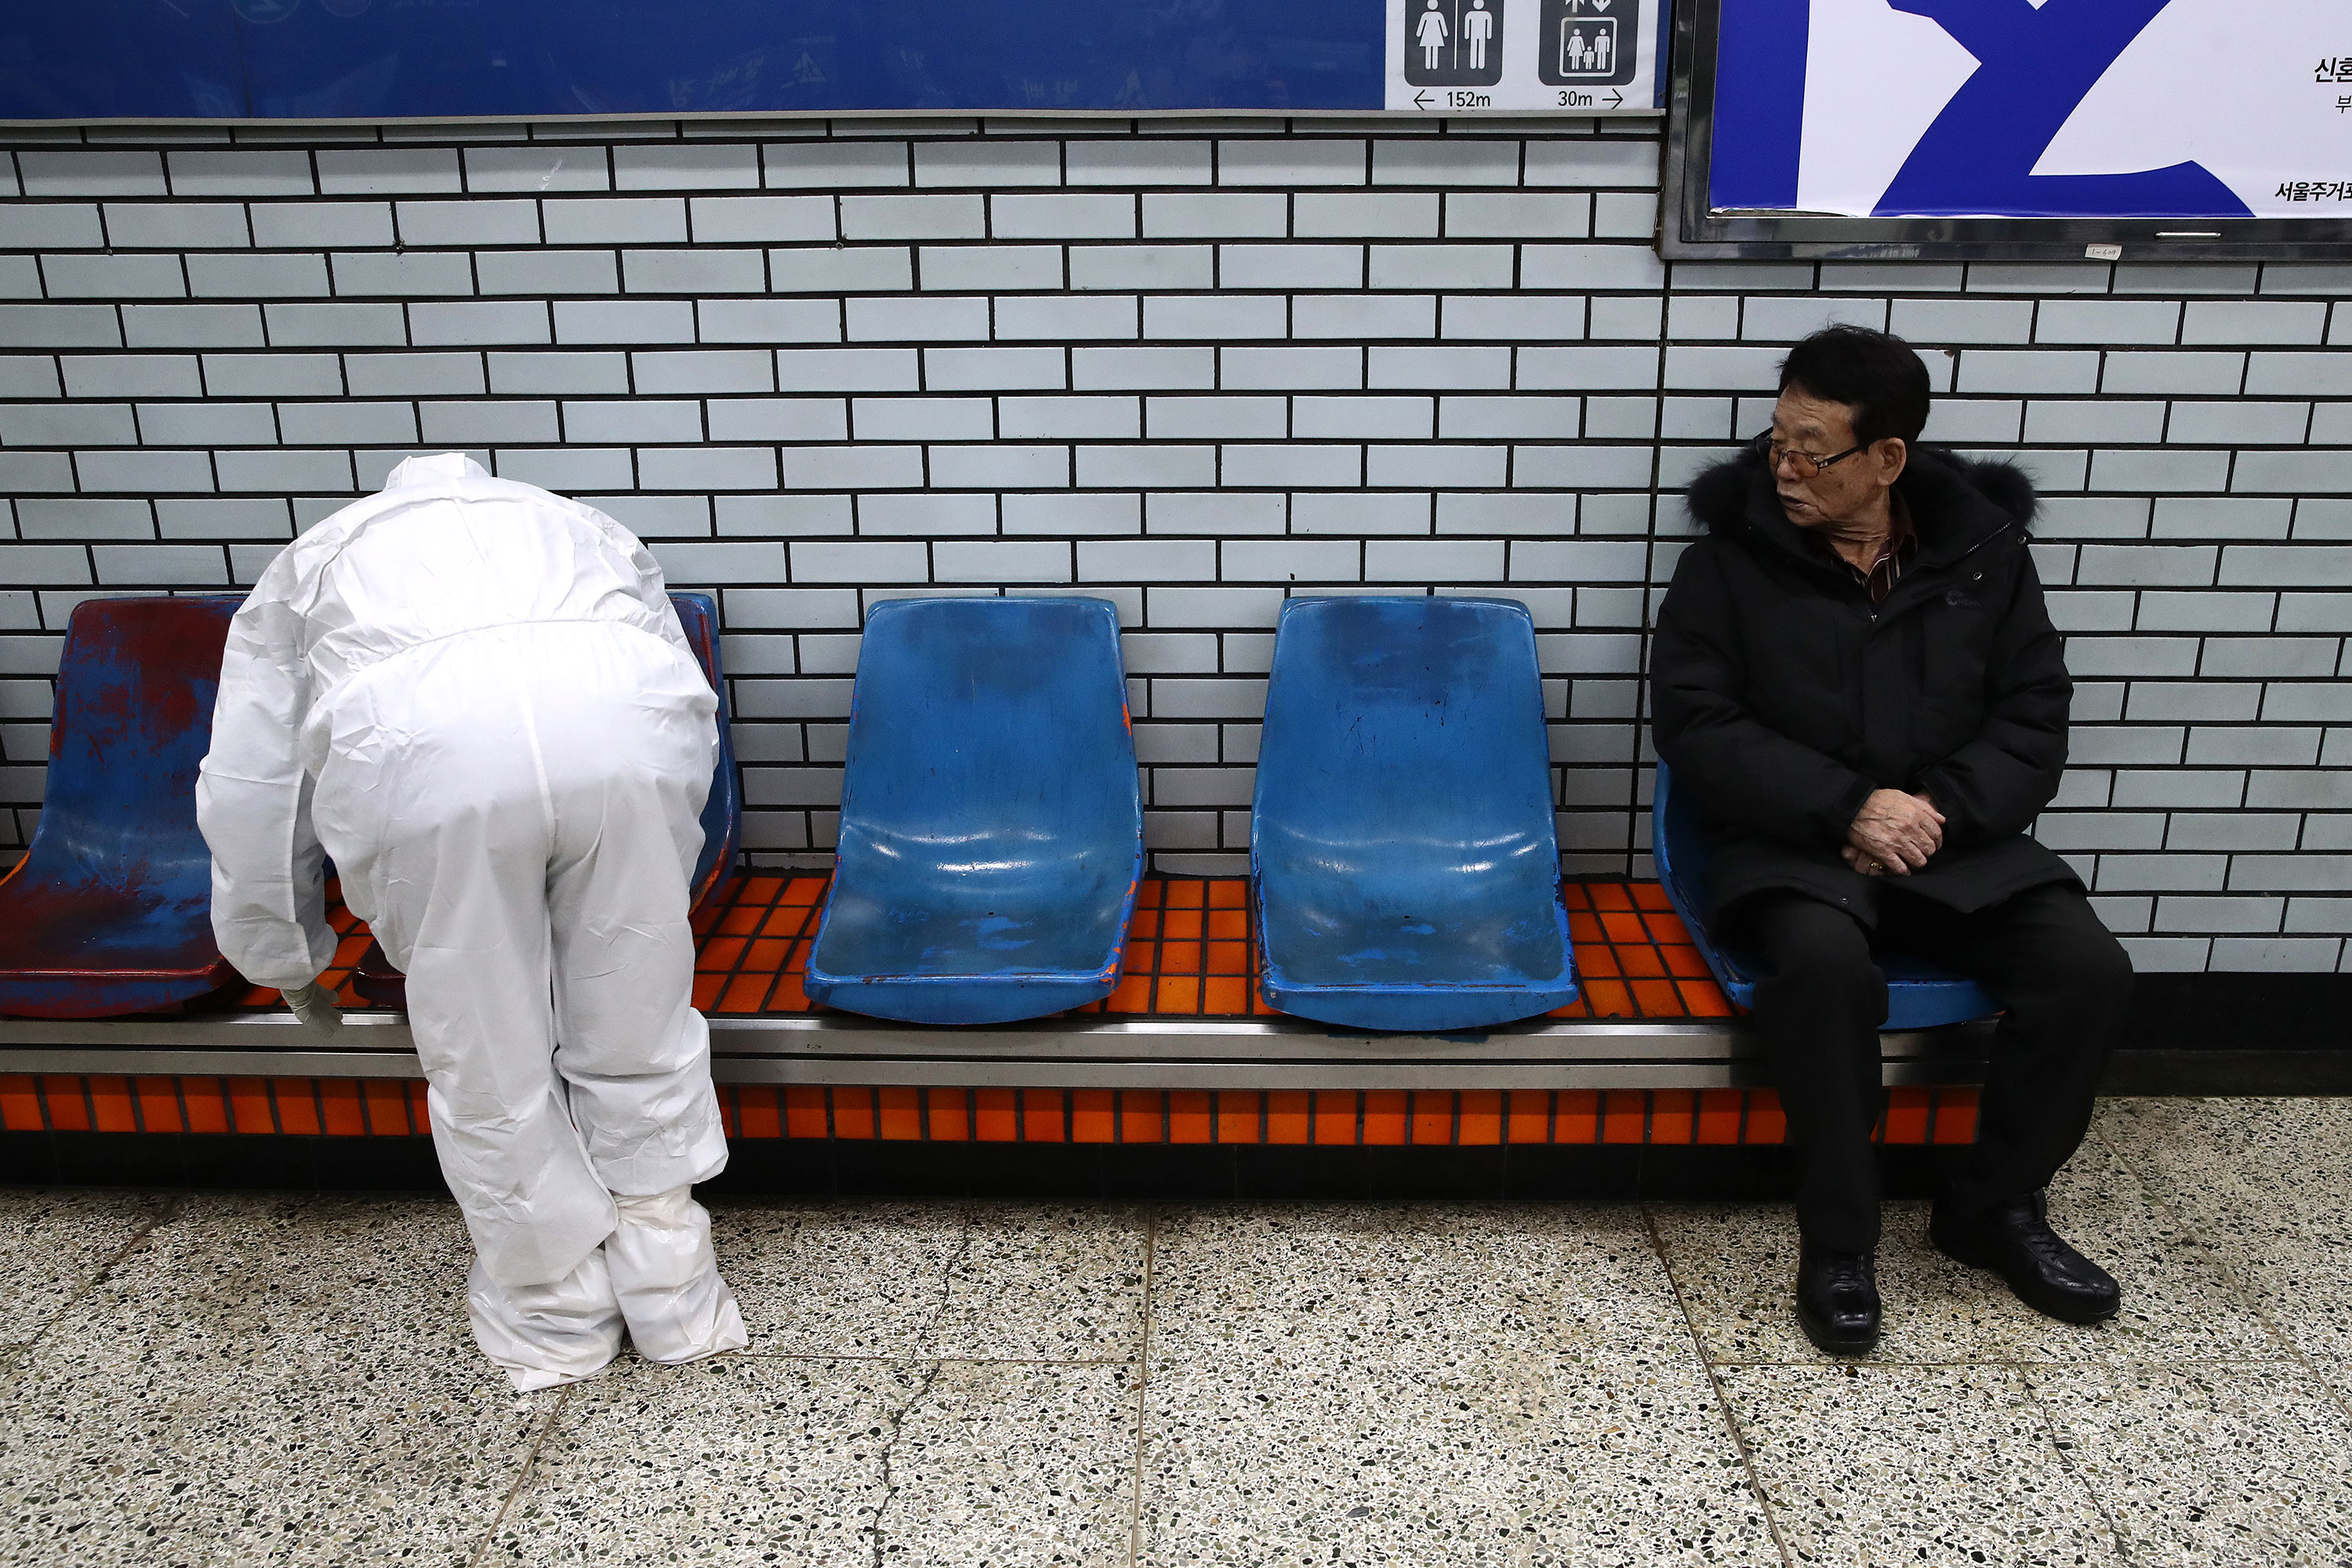 An official in protective clothing sprays disinfectant in a subway station in Seoul.